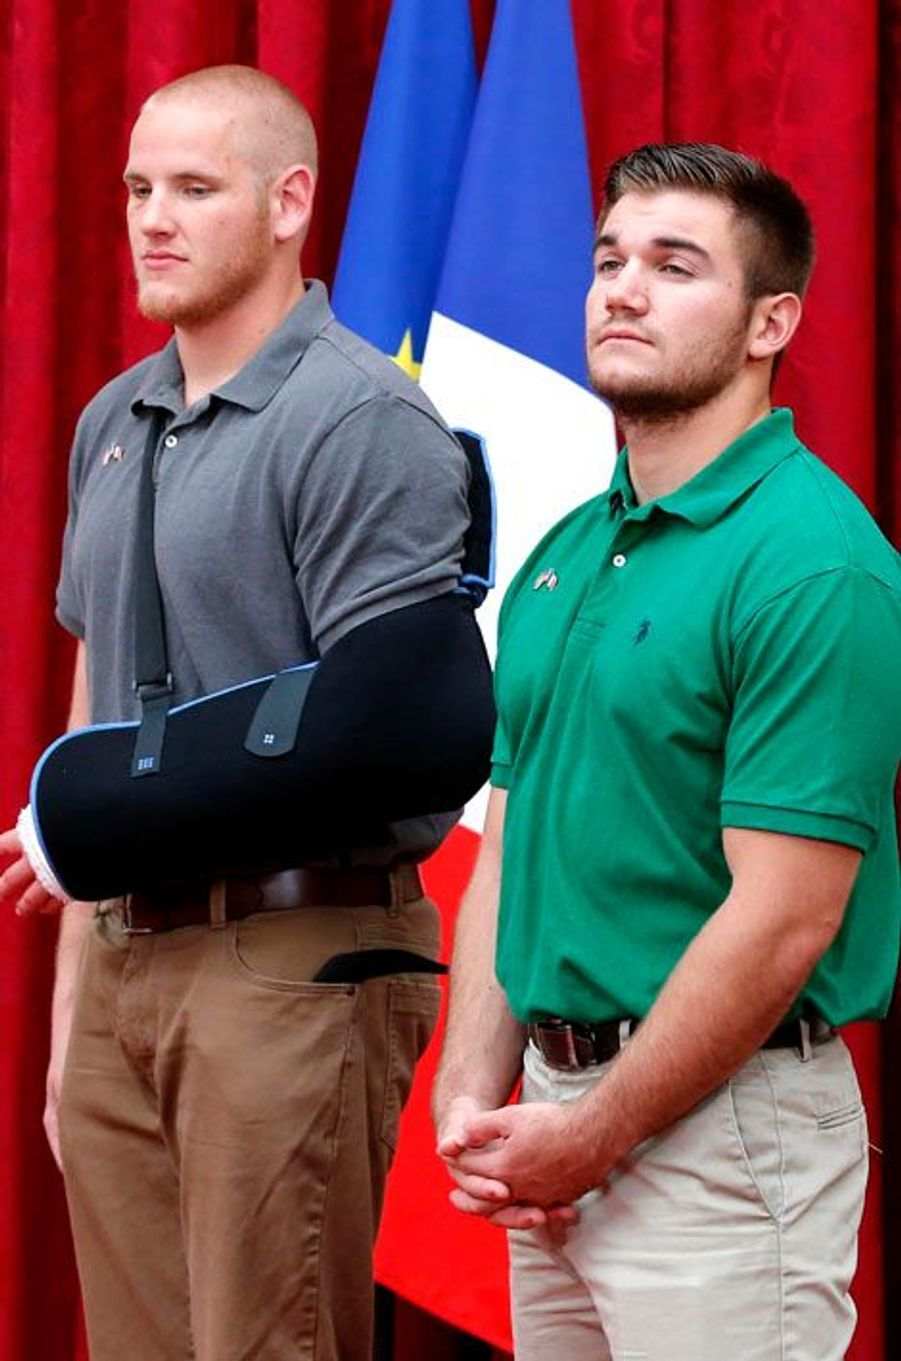 Spencer Stone et Alek Skarlatos